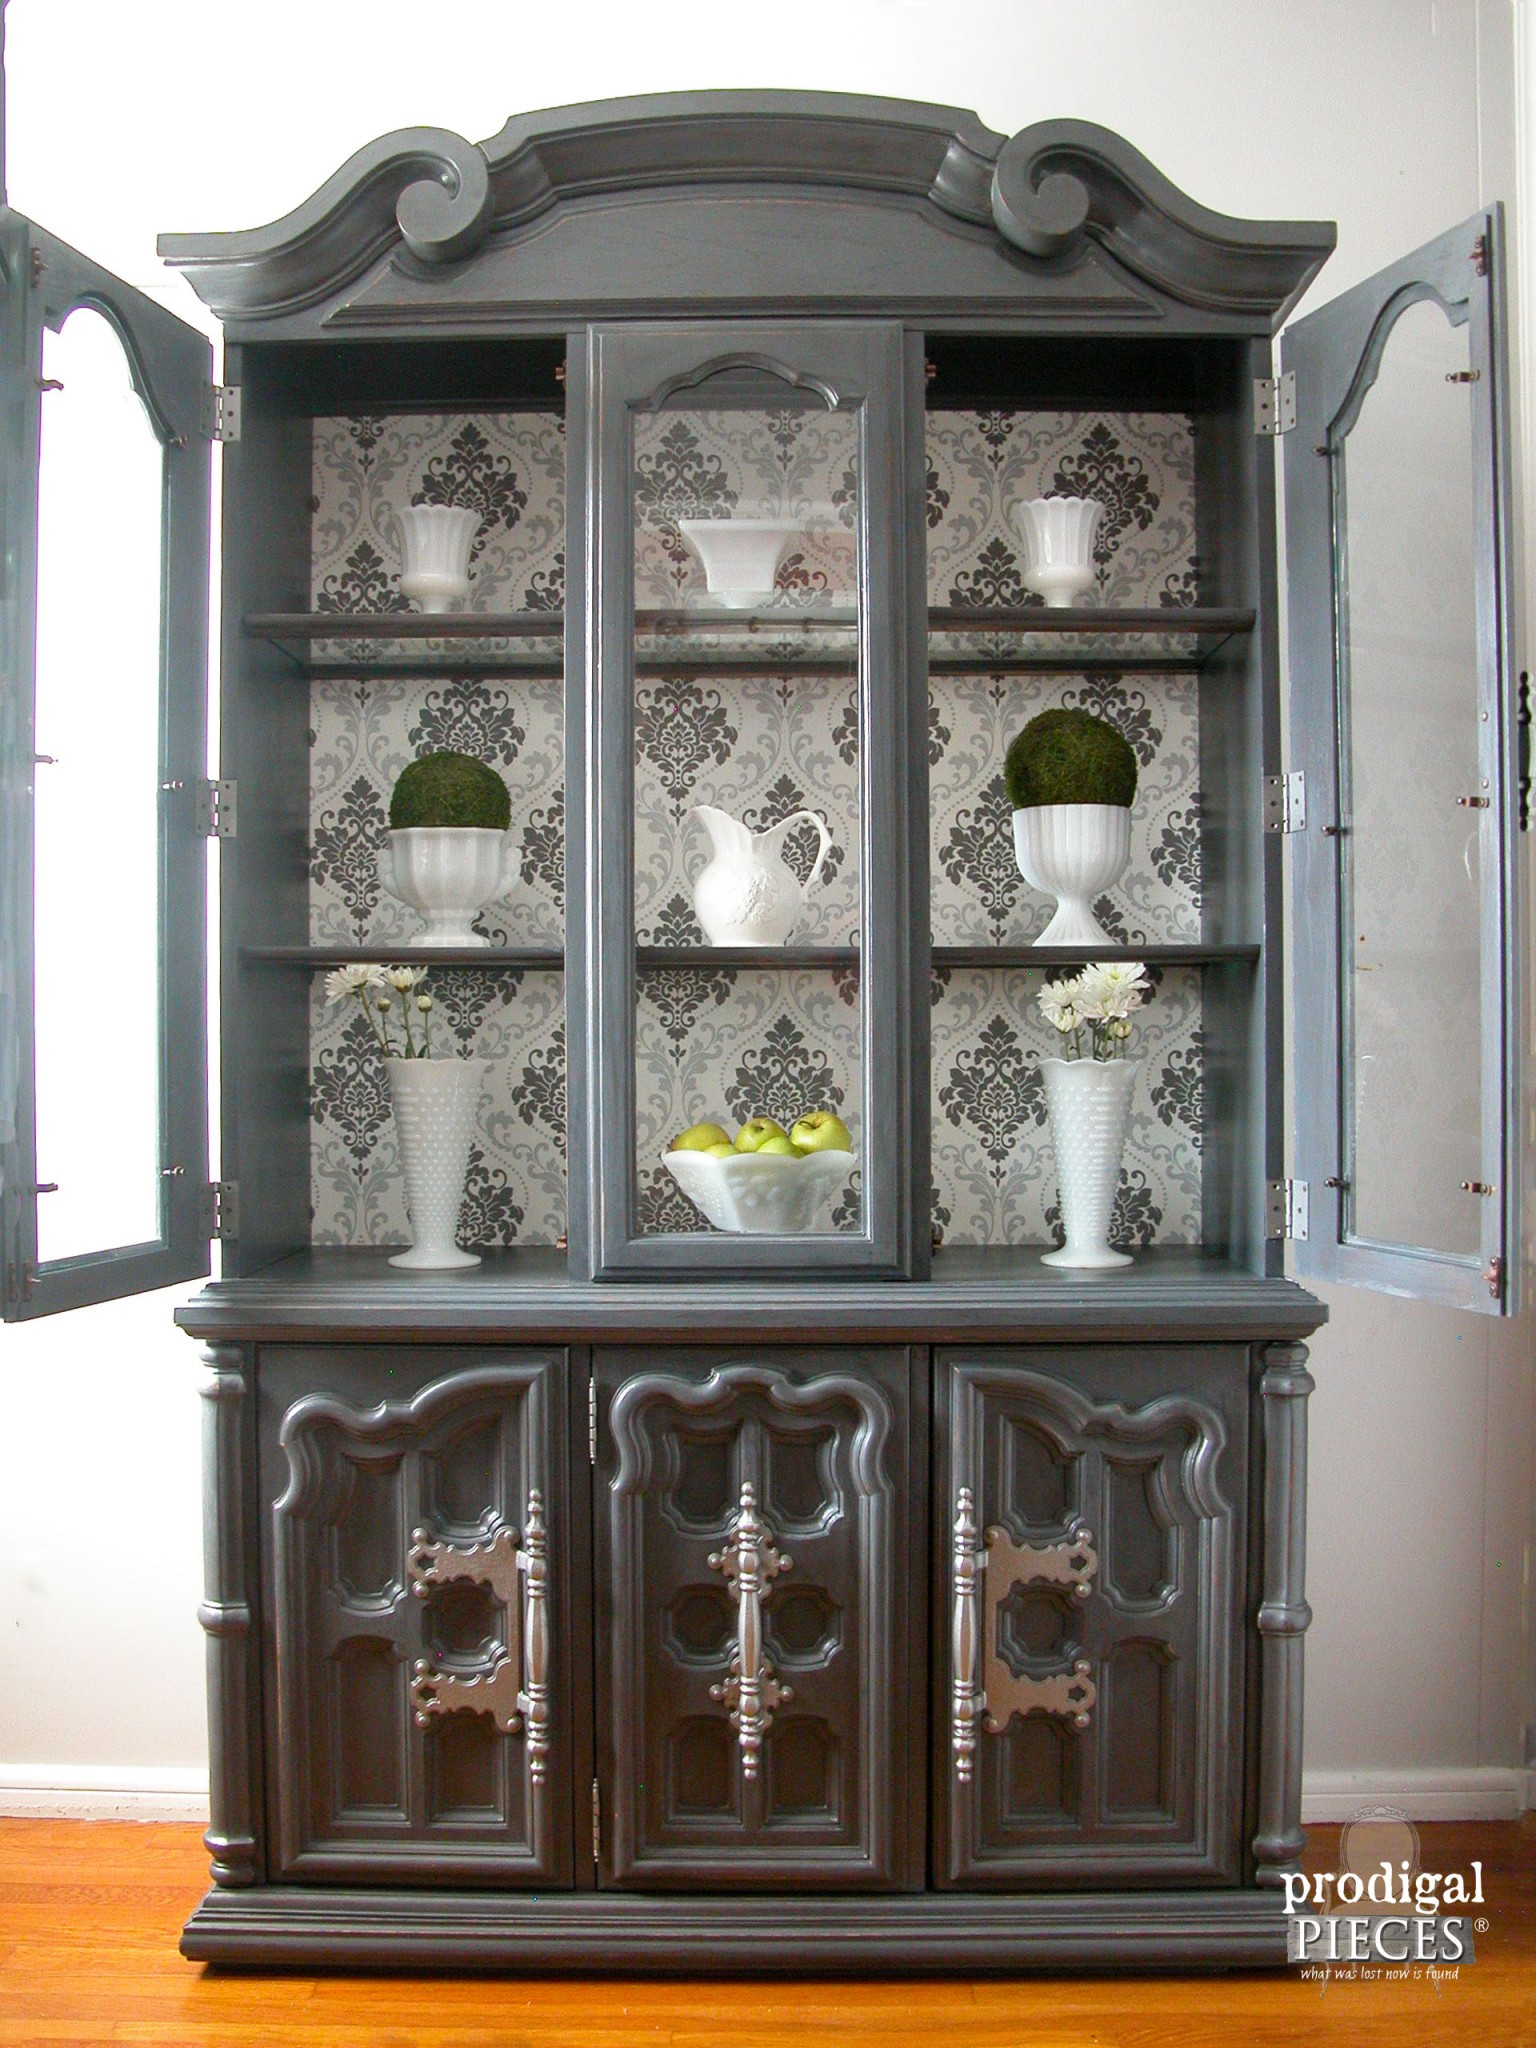 Merveilleux Open Display Of Wallpapered China Cabinet By Prodigal Pieces |  Www.prodigalpieces.com